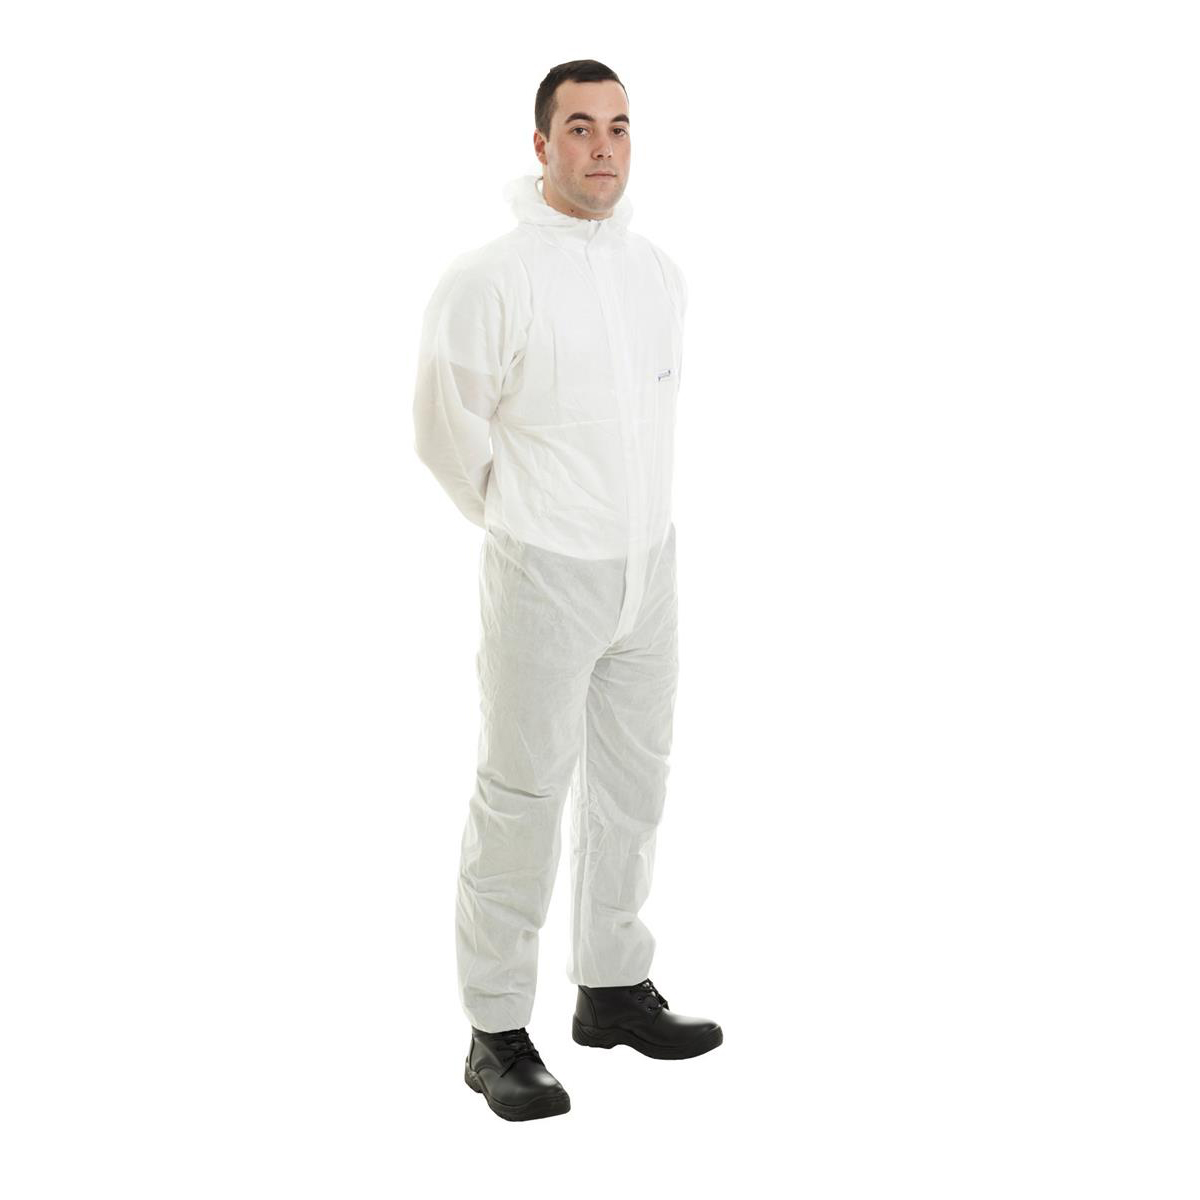 Supertouch Supertex SMS Coverall Type 5/6 Protection XXLarge White Ref 17605 Approx 3 Day Leadtime